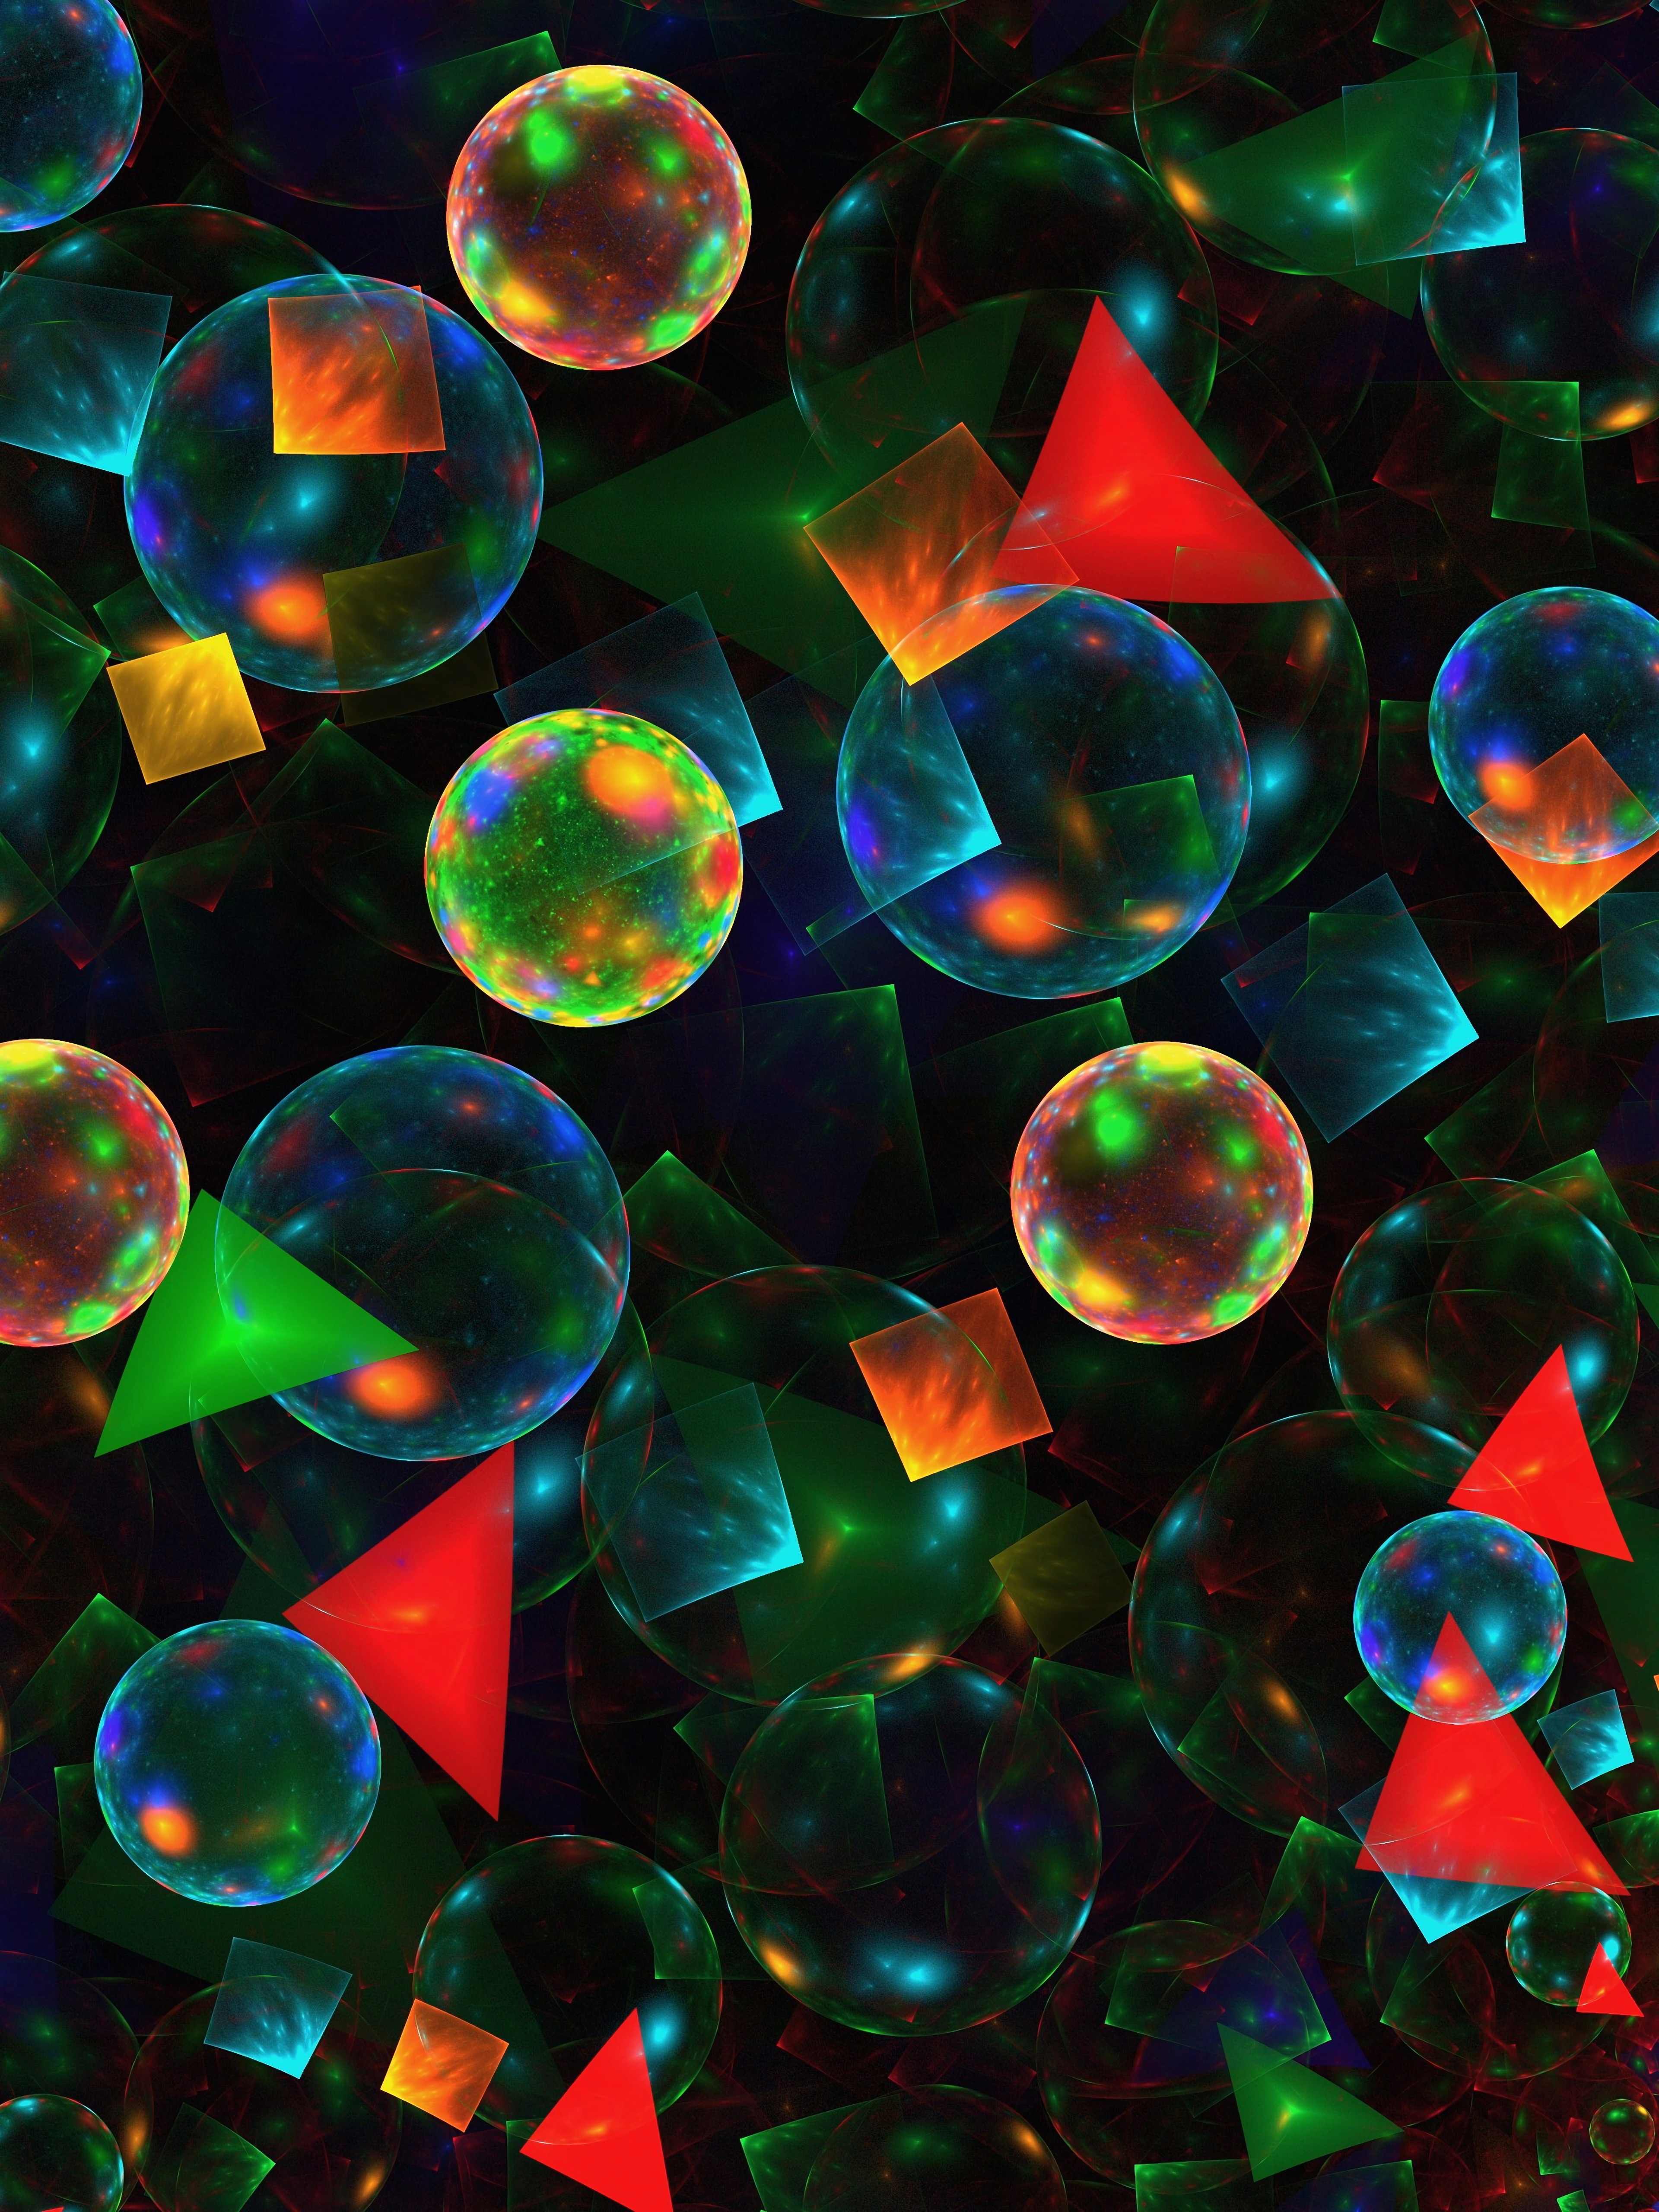 127411 download wallpaper Abstract, Balls, Triangles, Form, Multicolored, Motley screensavers and pictures for free